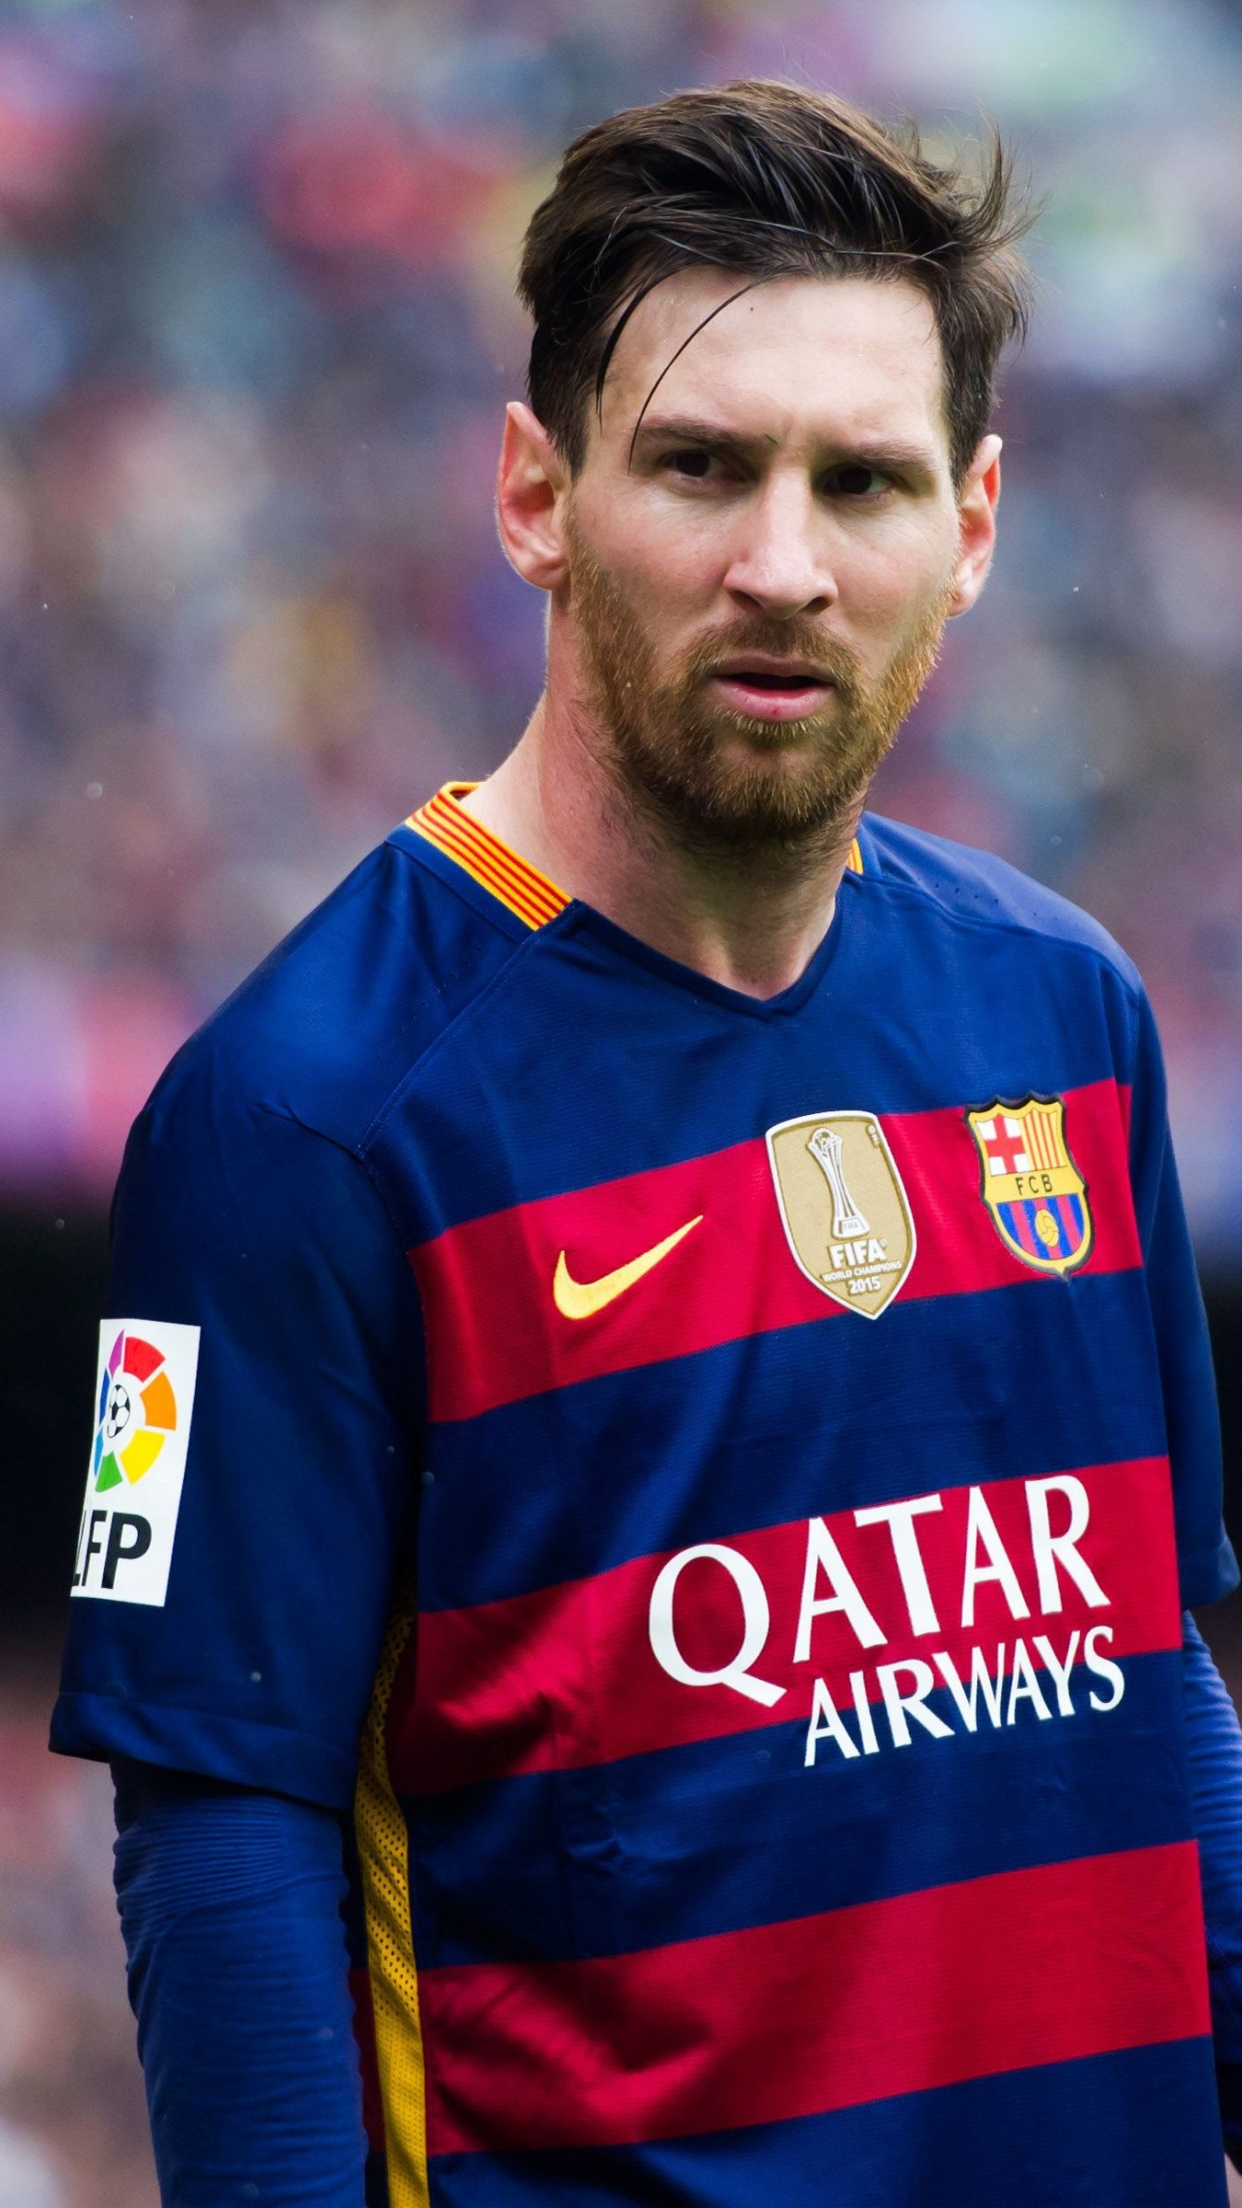 Lionel Messi 4K Wallpaper, Football player, Argentinian ...